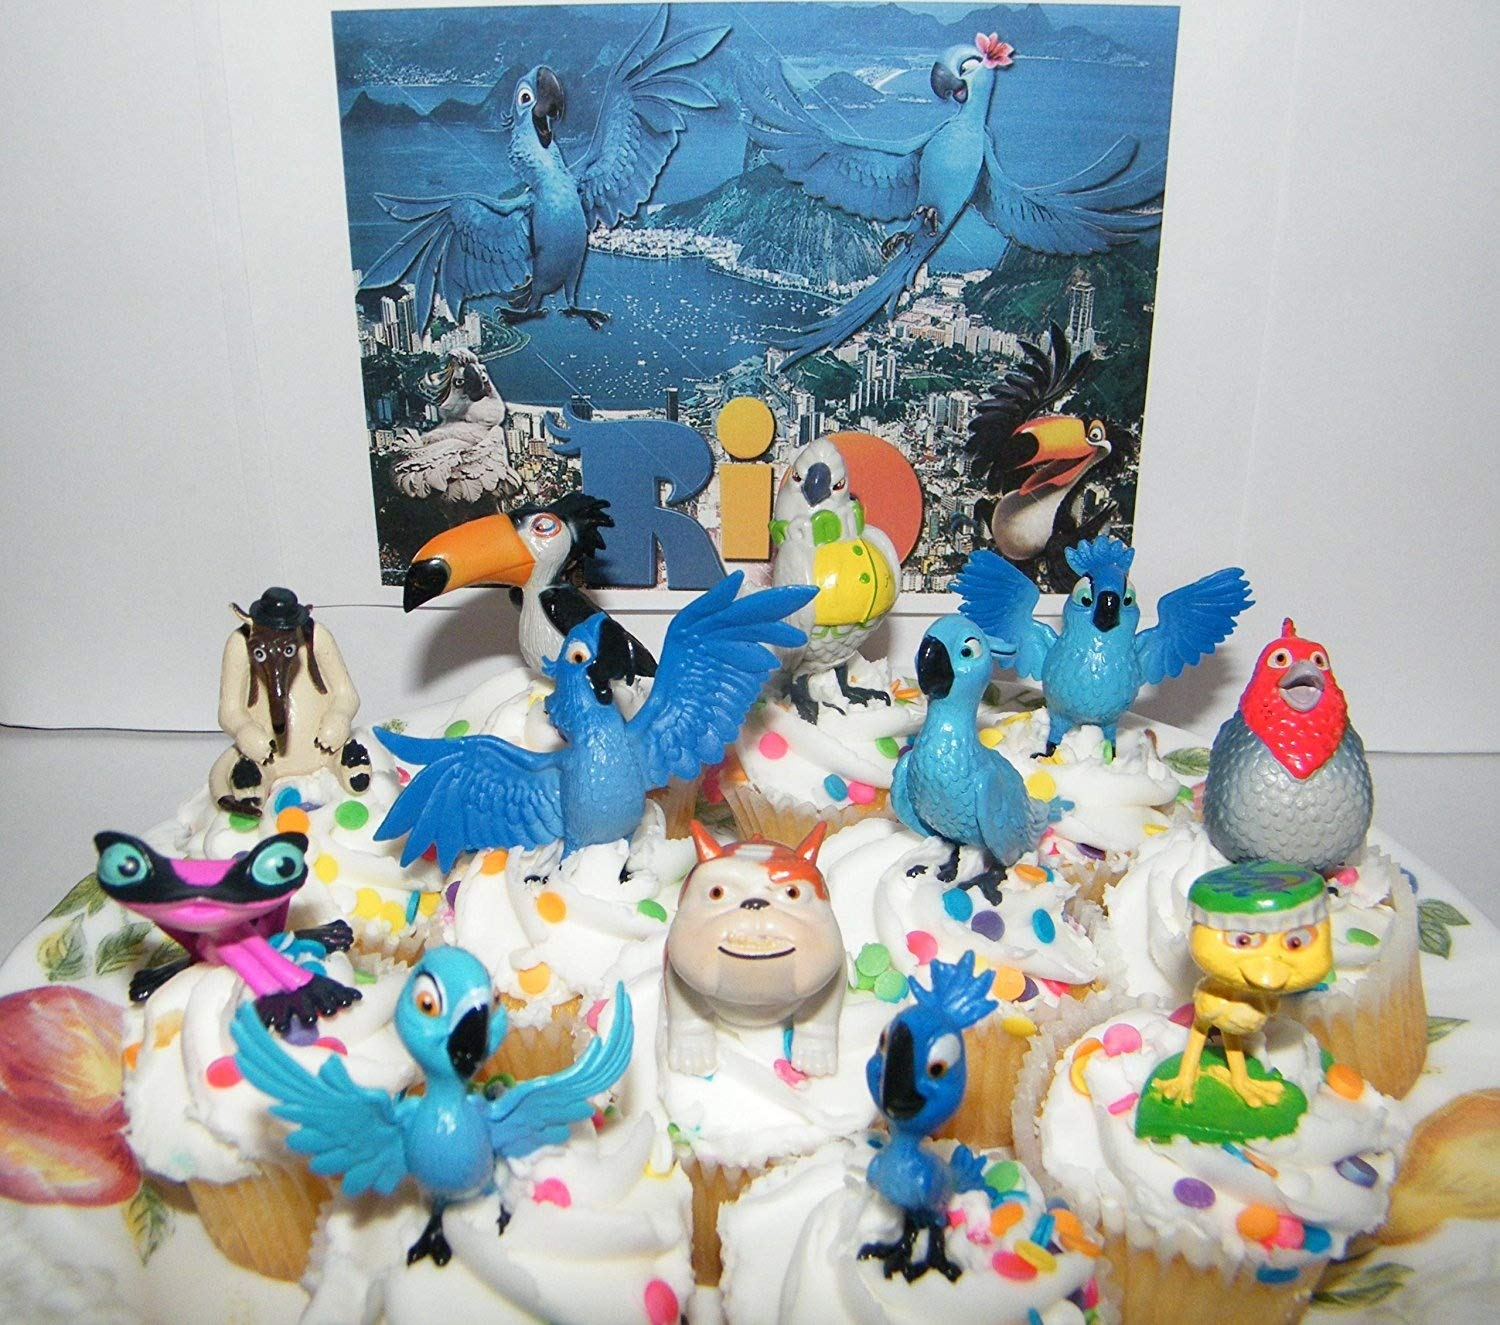 Rio Movie Set of 12 Bird Figure Cake Toppers / Cupcake Decorations Party Favors with Blu, Jewel, the 3 Kids, Luiz, Nigel and New Characters Gabi, Charlie and More! by PP Inc